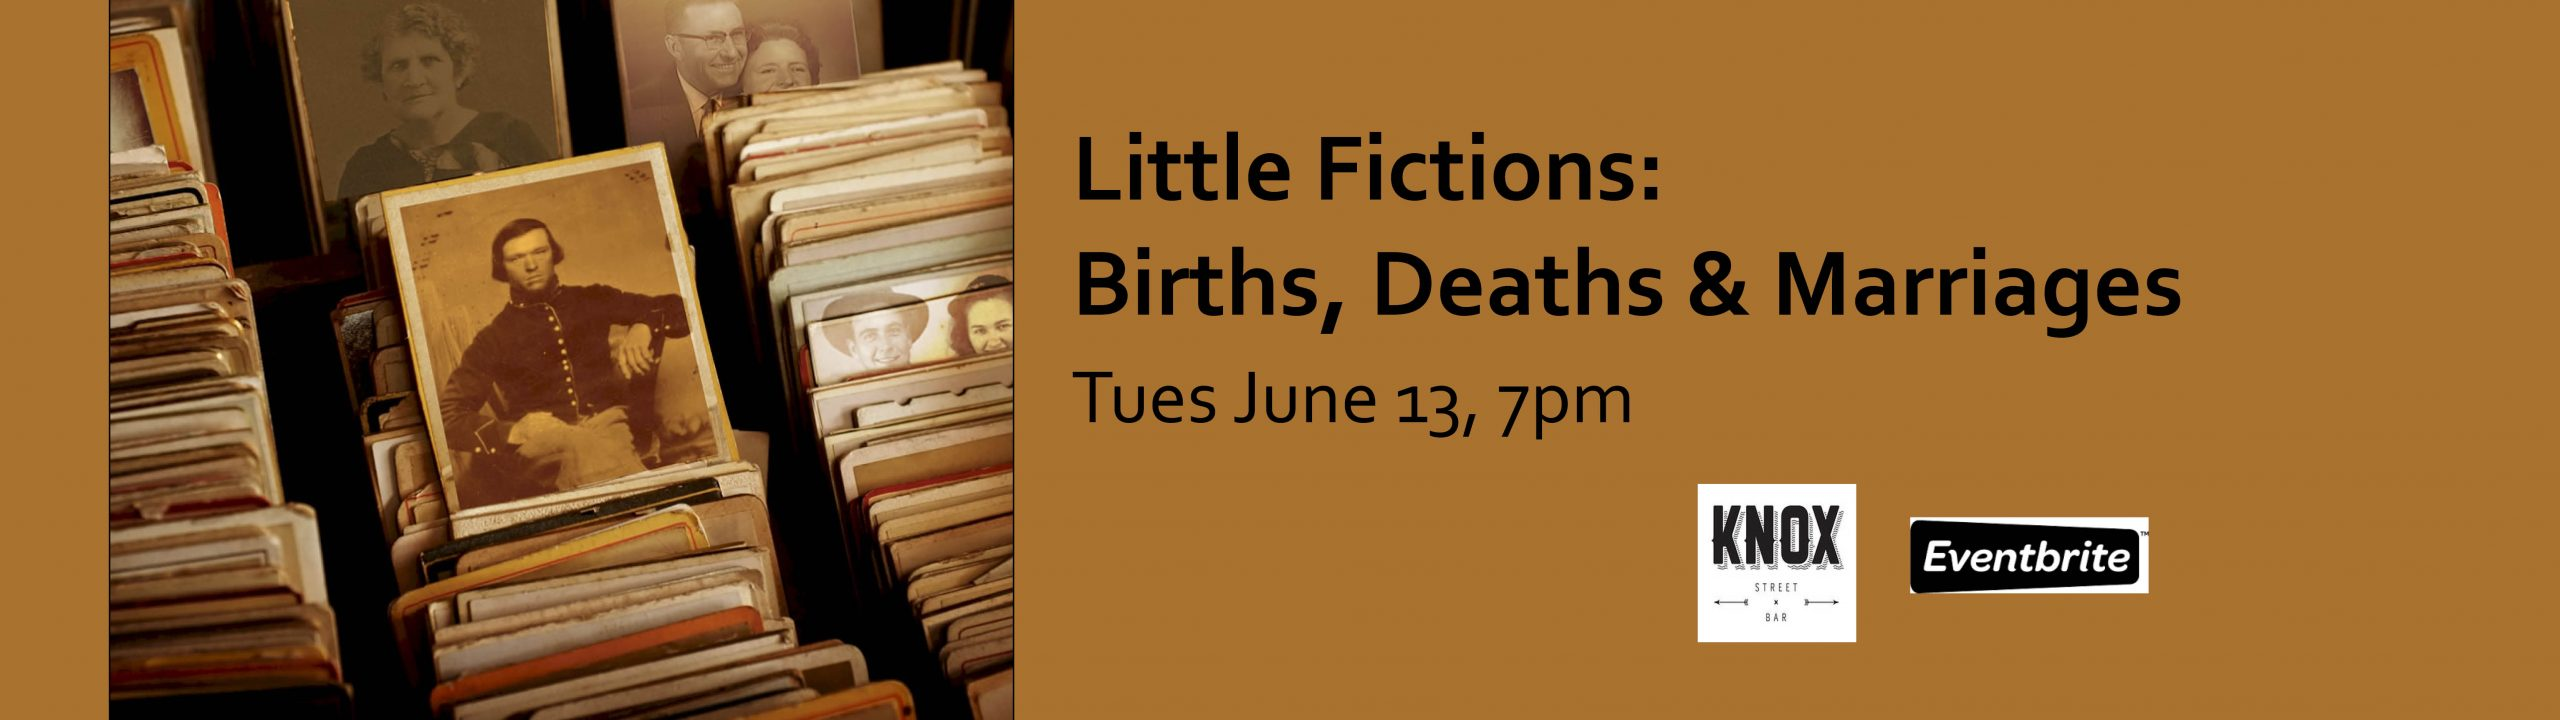 LITTLE FICTIONS: Births, Deaths and Marriages